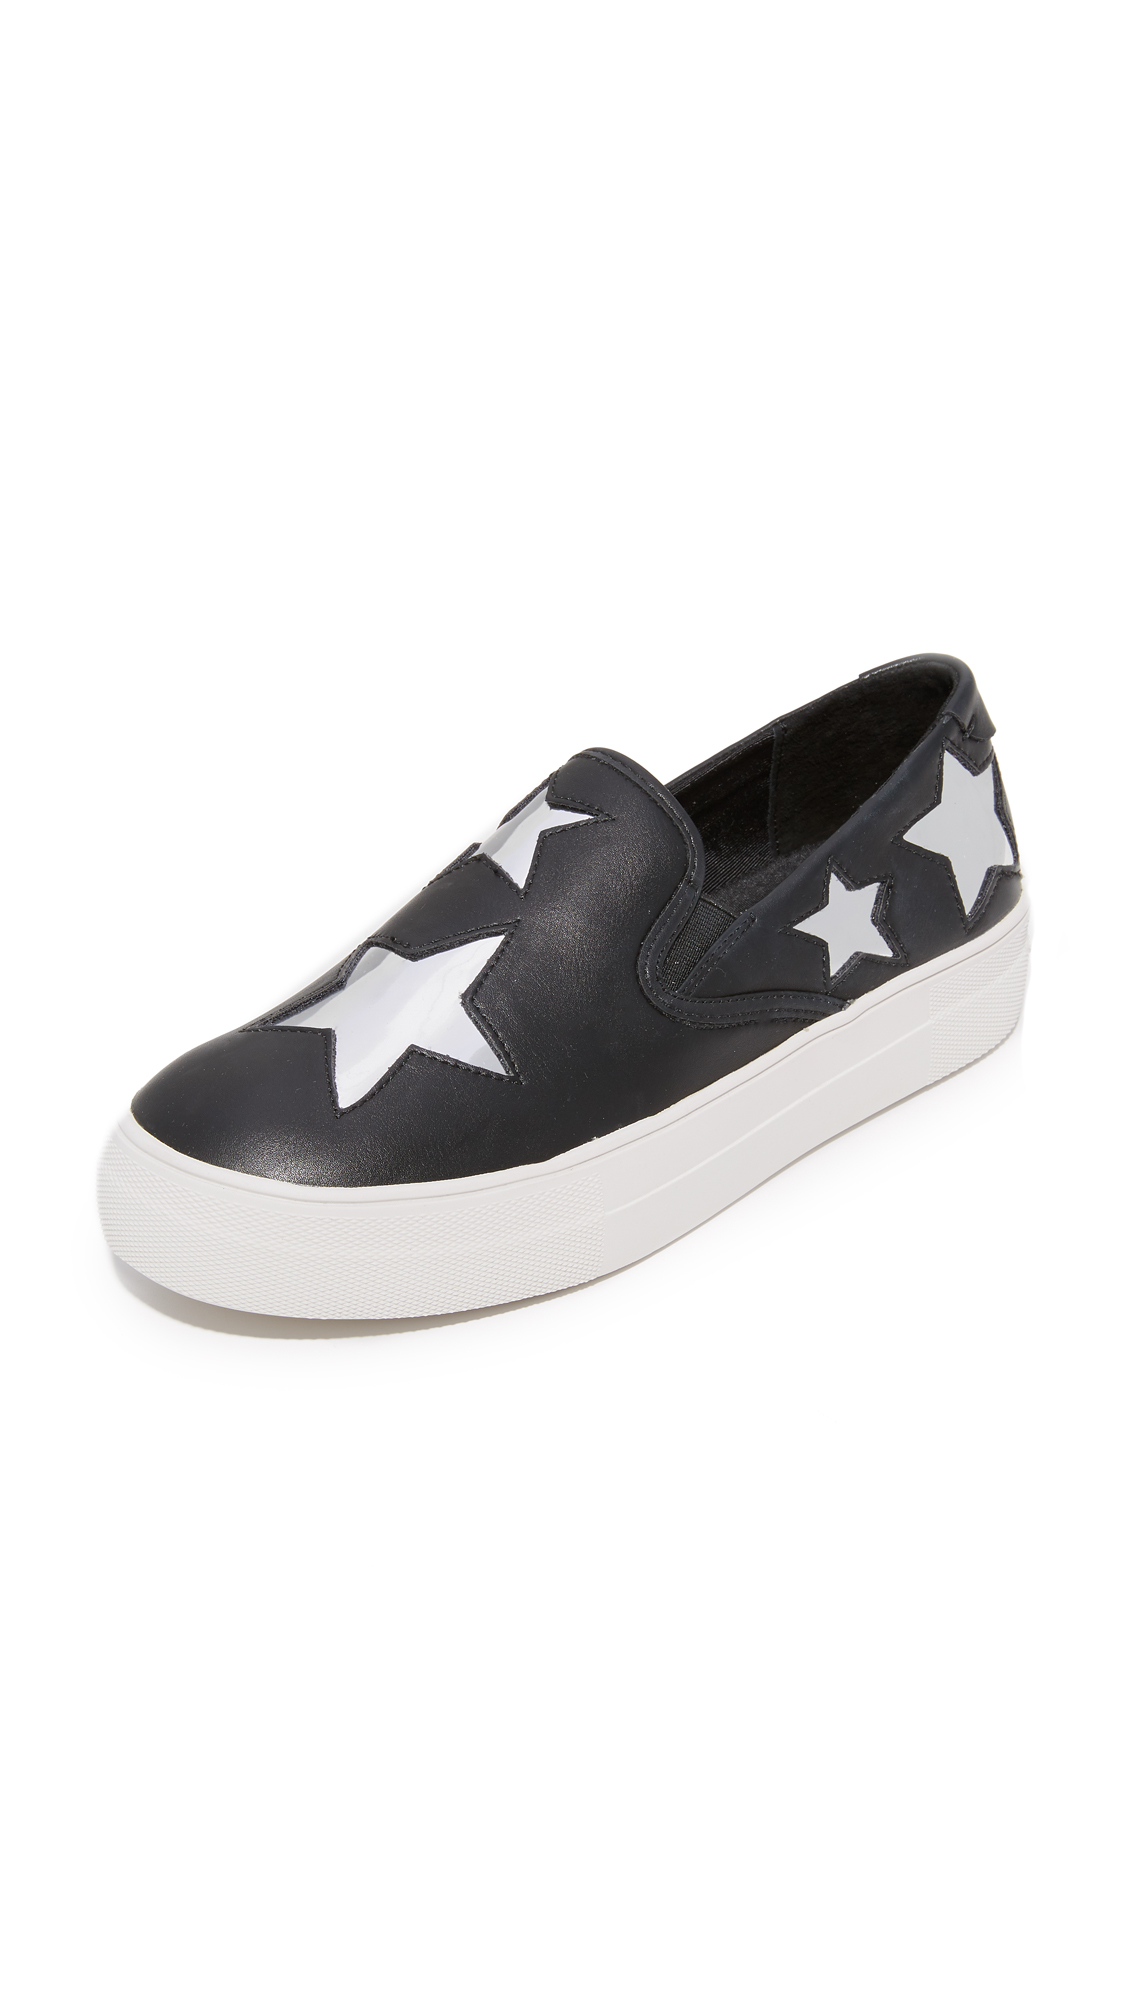 Steven Giggy Slip On Sneakers - Black Multi